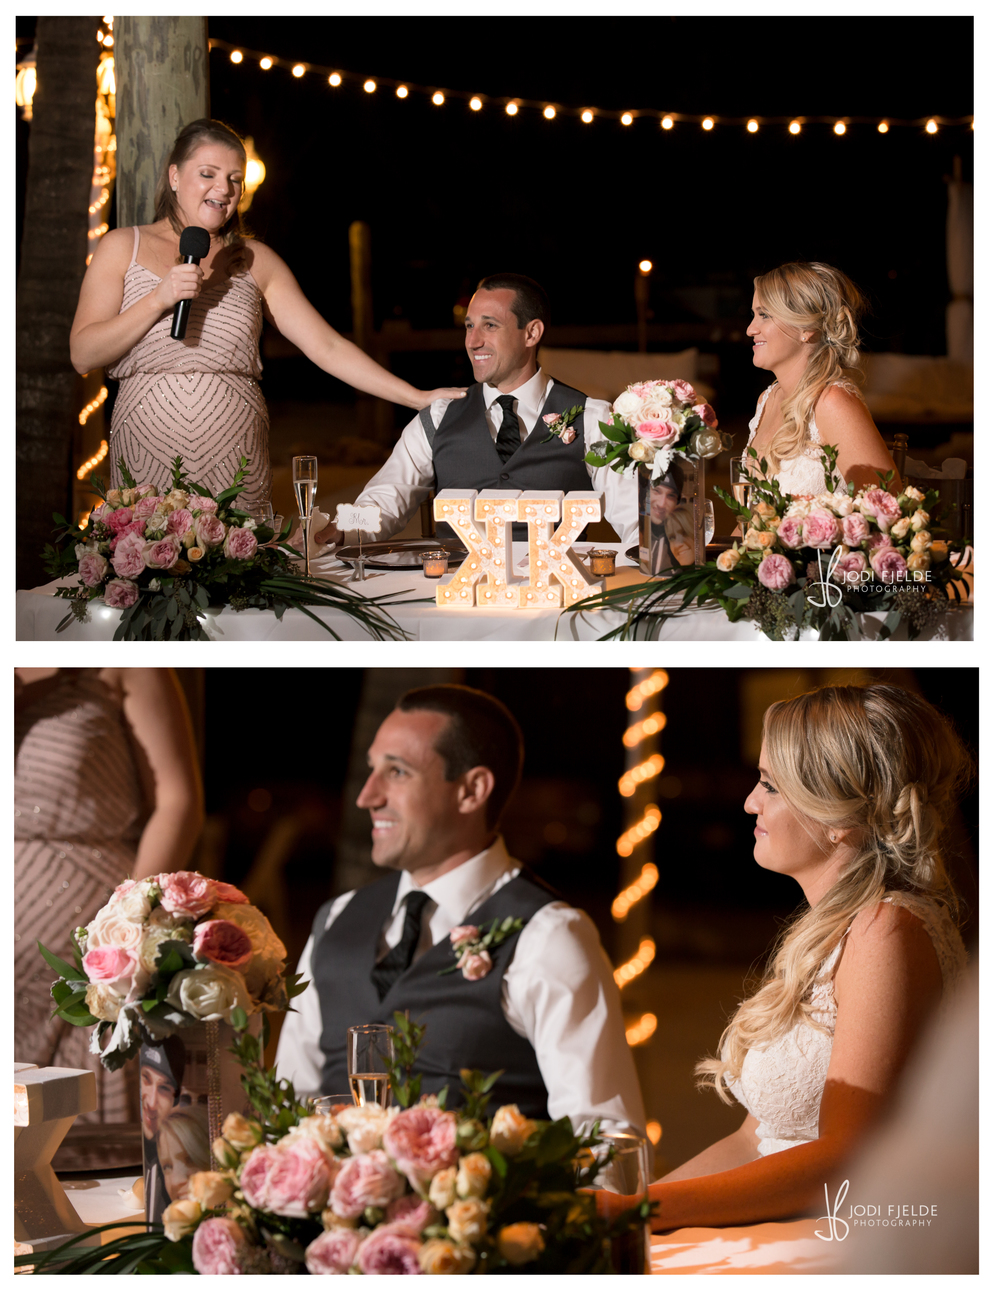 Cocconut_Cove_&_ Marina_ wedding_Kalie_and_Kurt 40.jpg